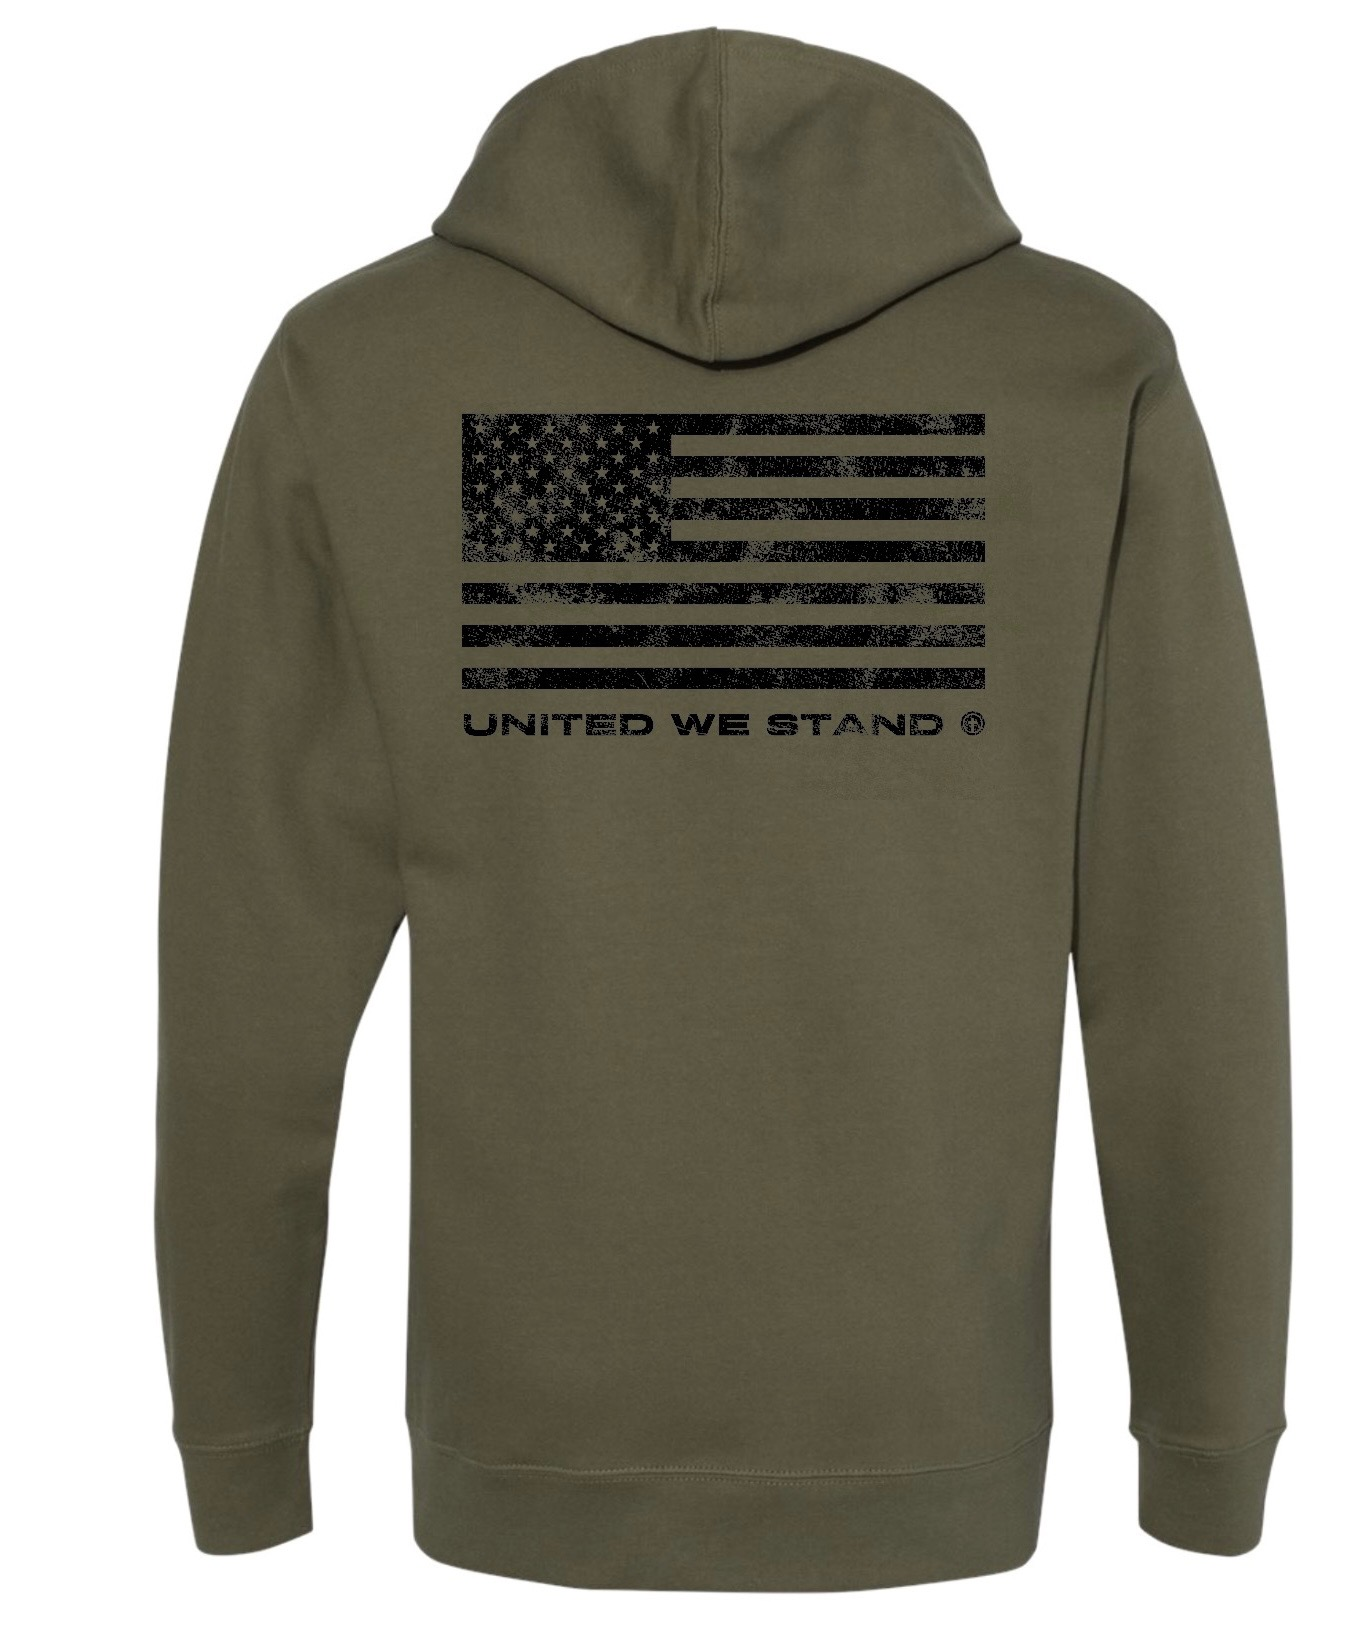 IN GOD WE TRUST GREEN HOODED SWEATSHIRT